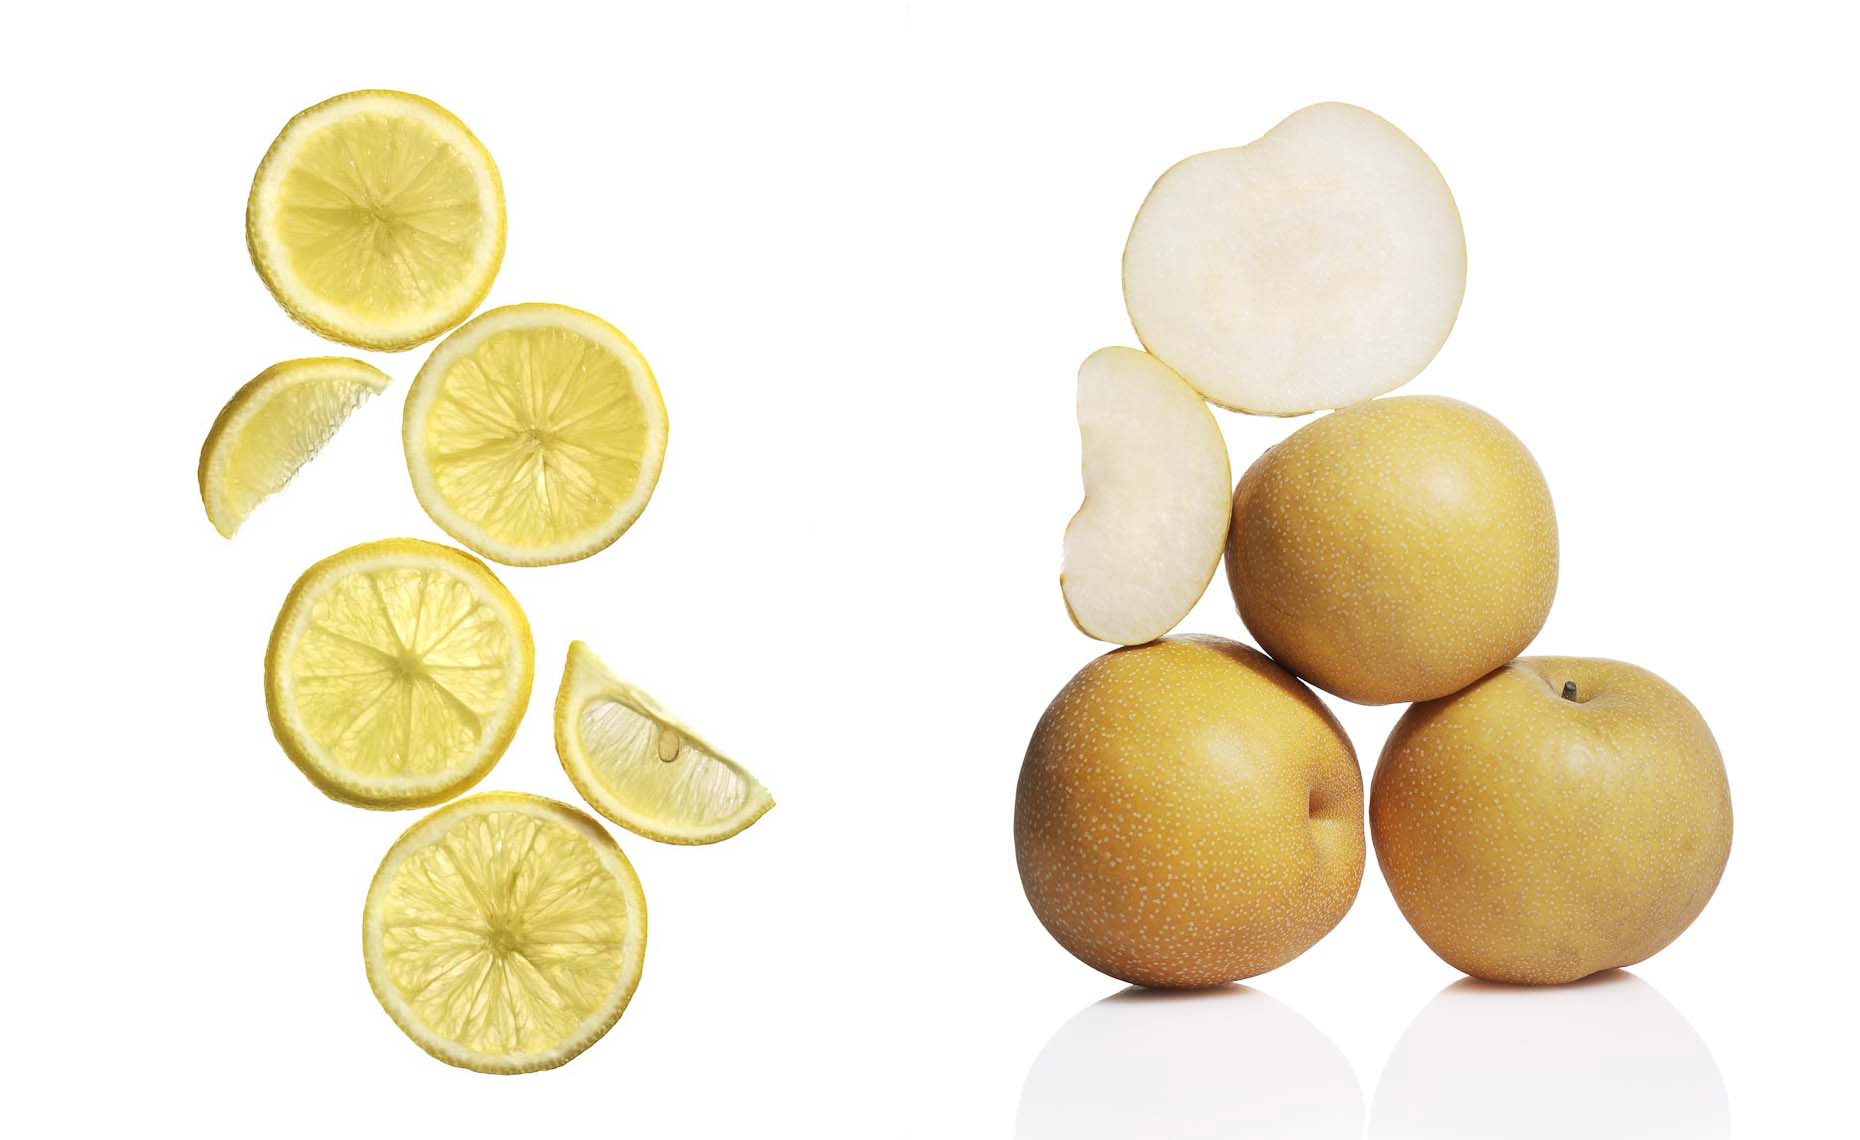 Food Still Life, Lemon Slices and Asian Pears